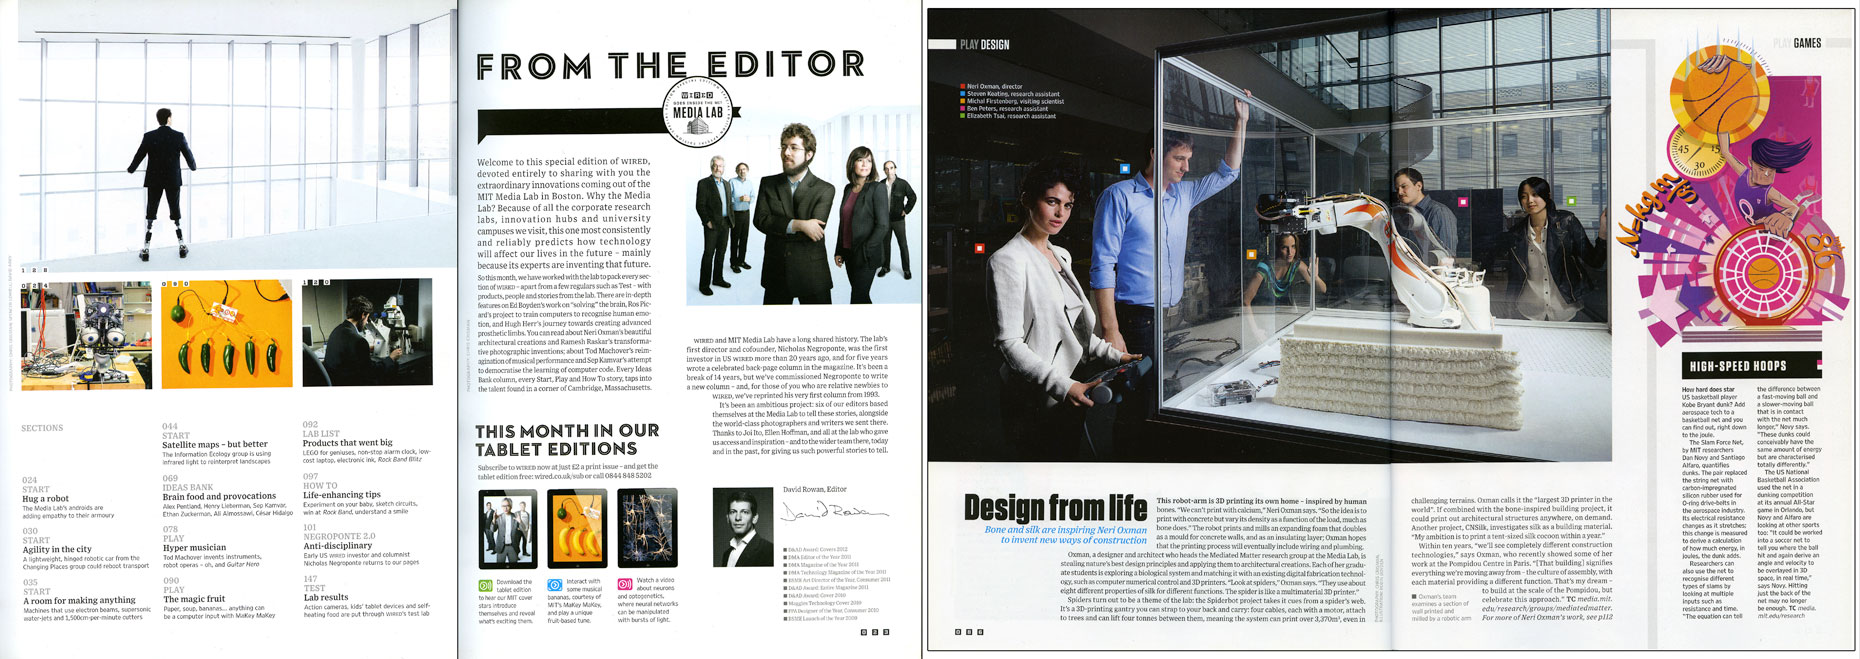 WIRED UK: The MIT MEDIA LAB. November 2012 issue  - SPREAD 1 and 2: Hugh Herr and Neri Oxman